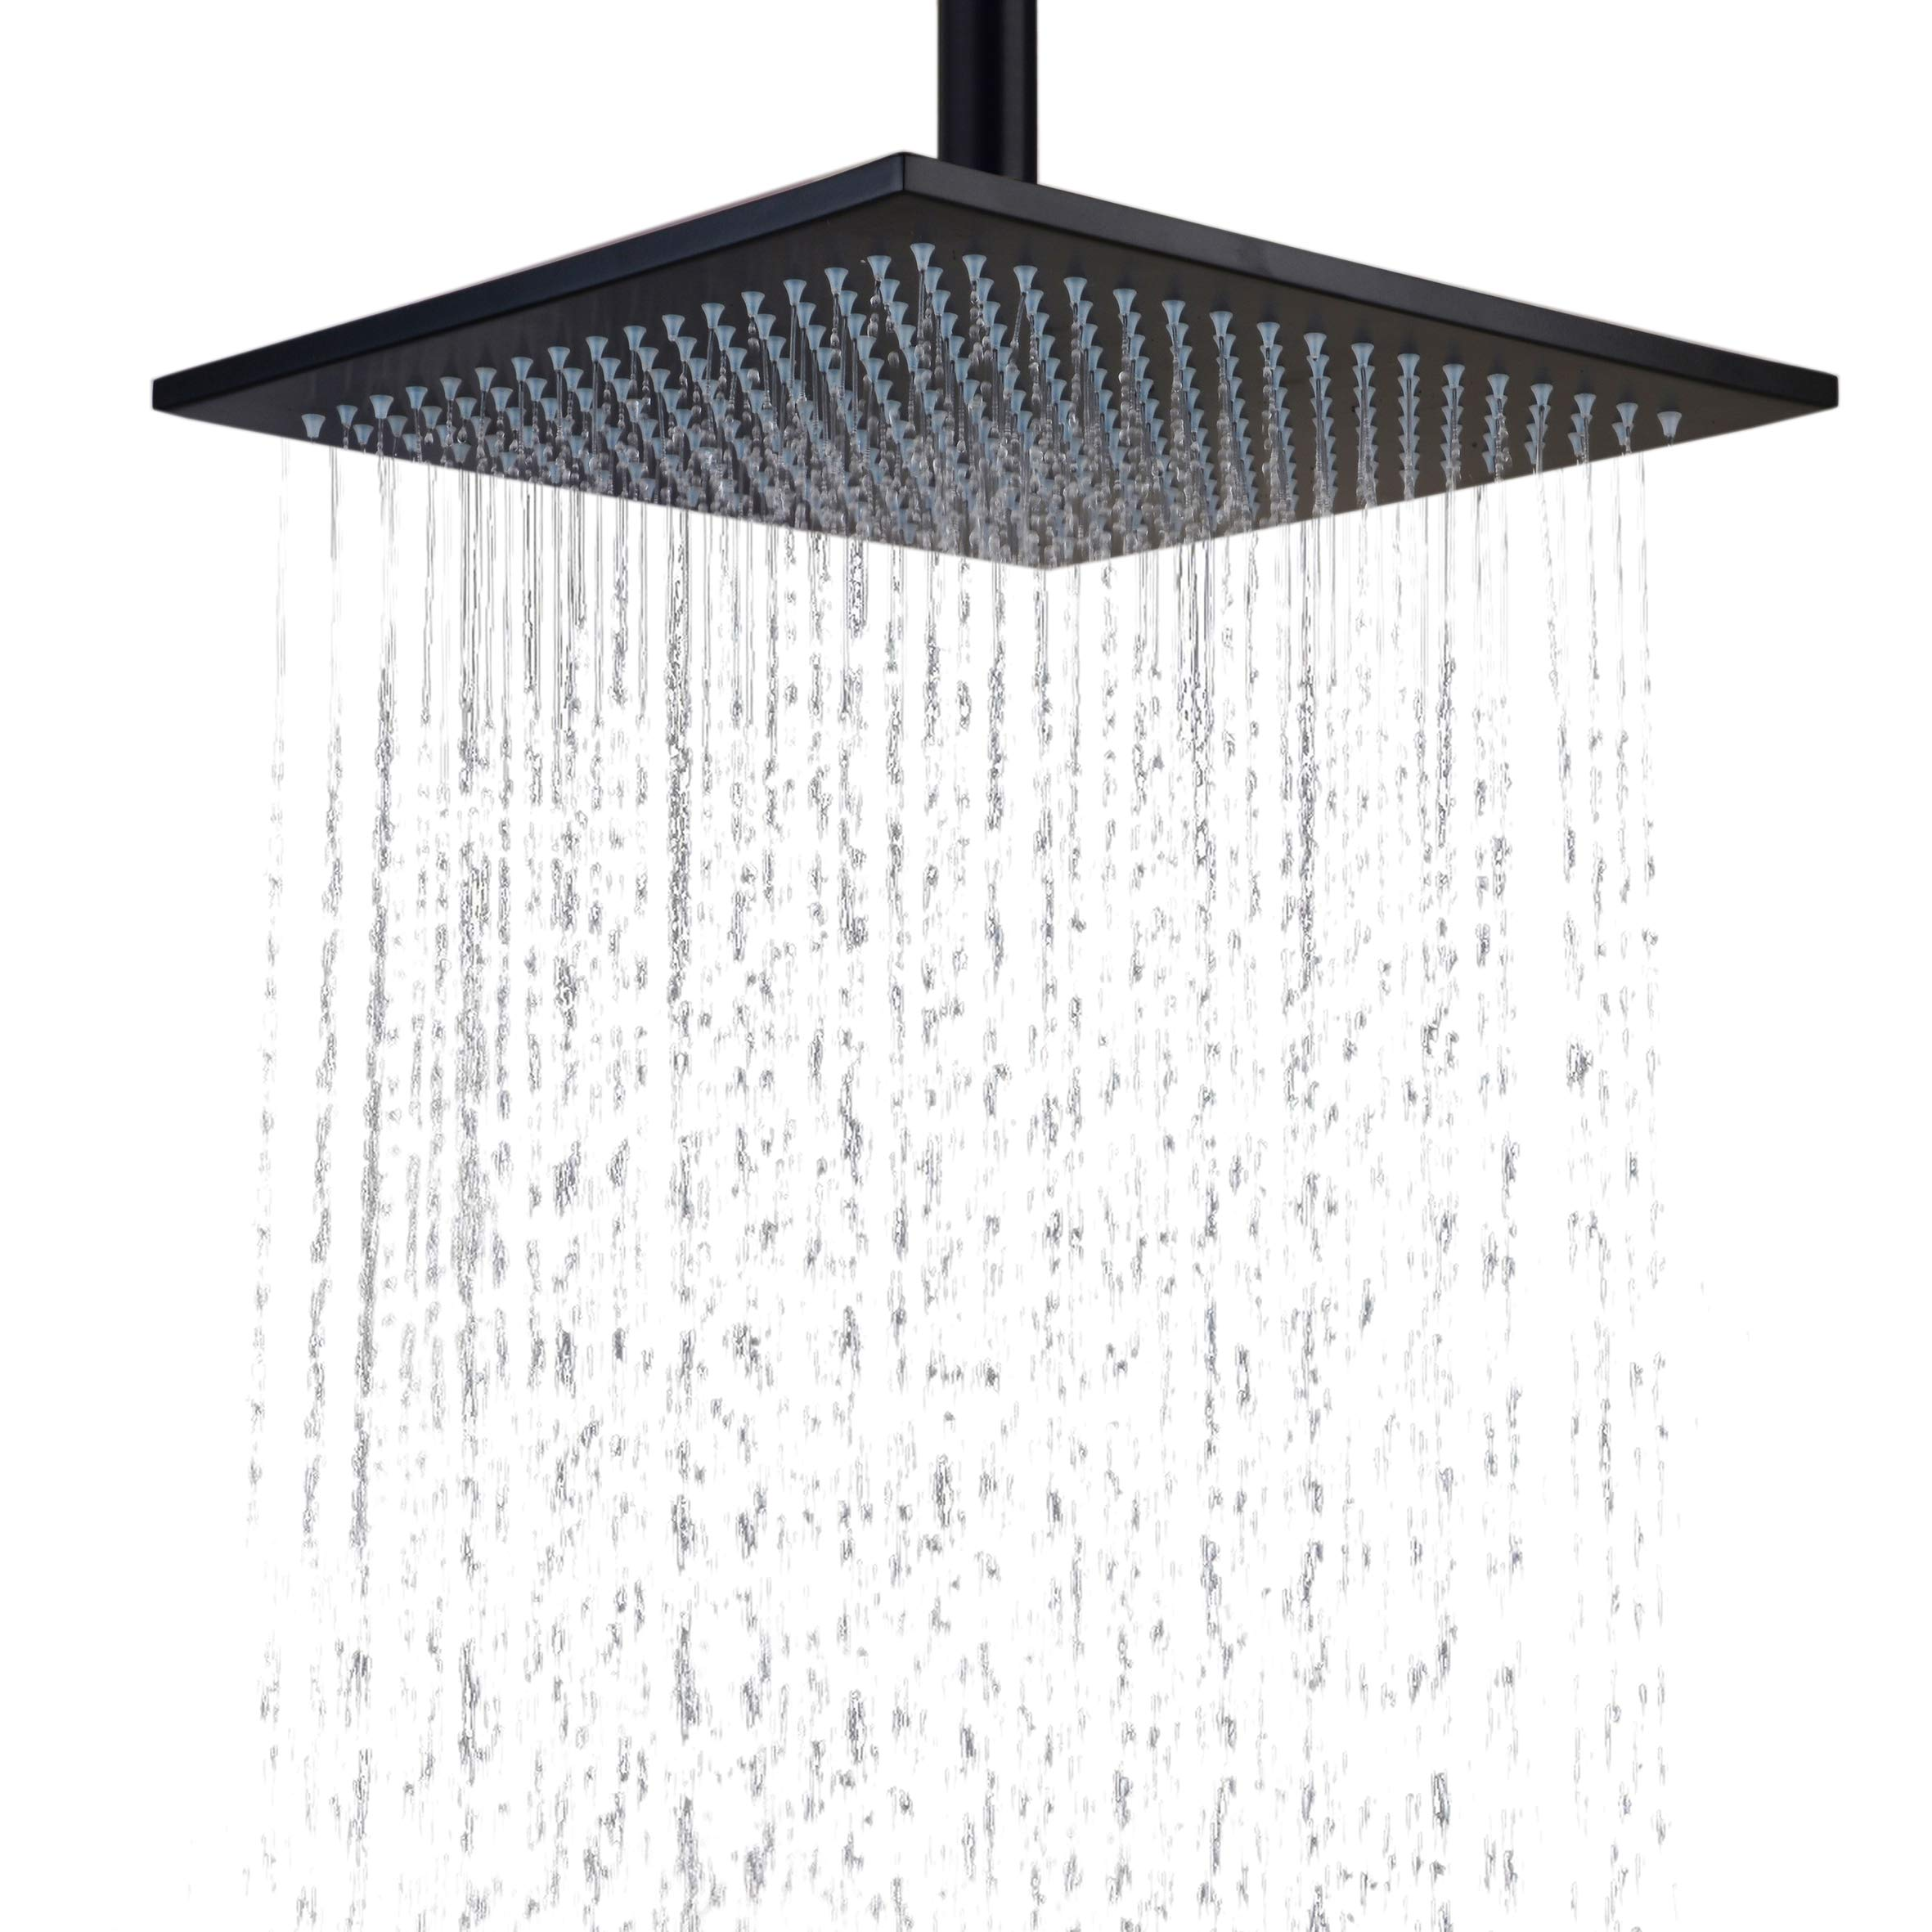 Hiendure Stainless Steel Bathroom Square Rainfall Shower Head 12 Inch,oil Rubbed Bronze